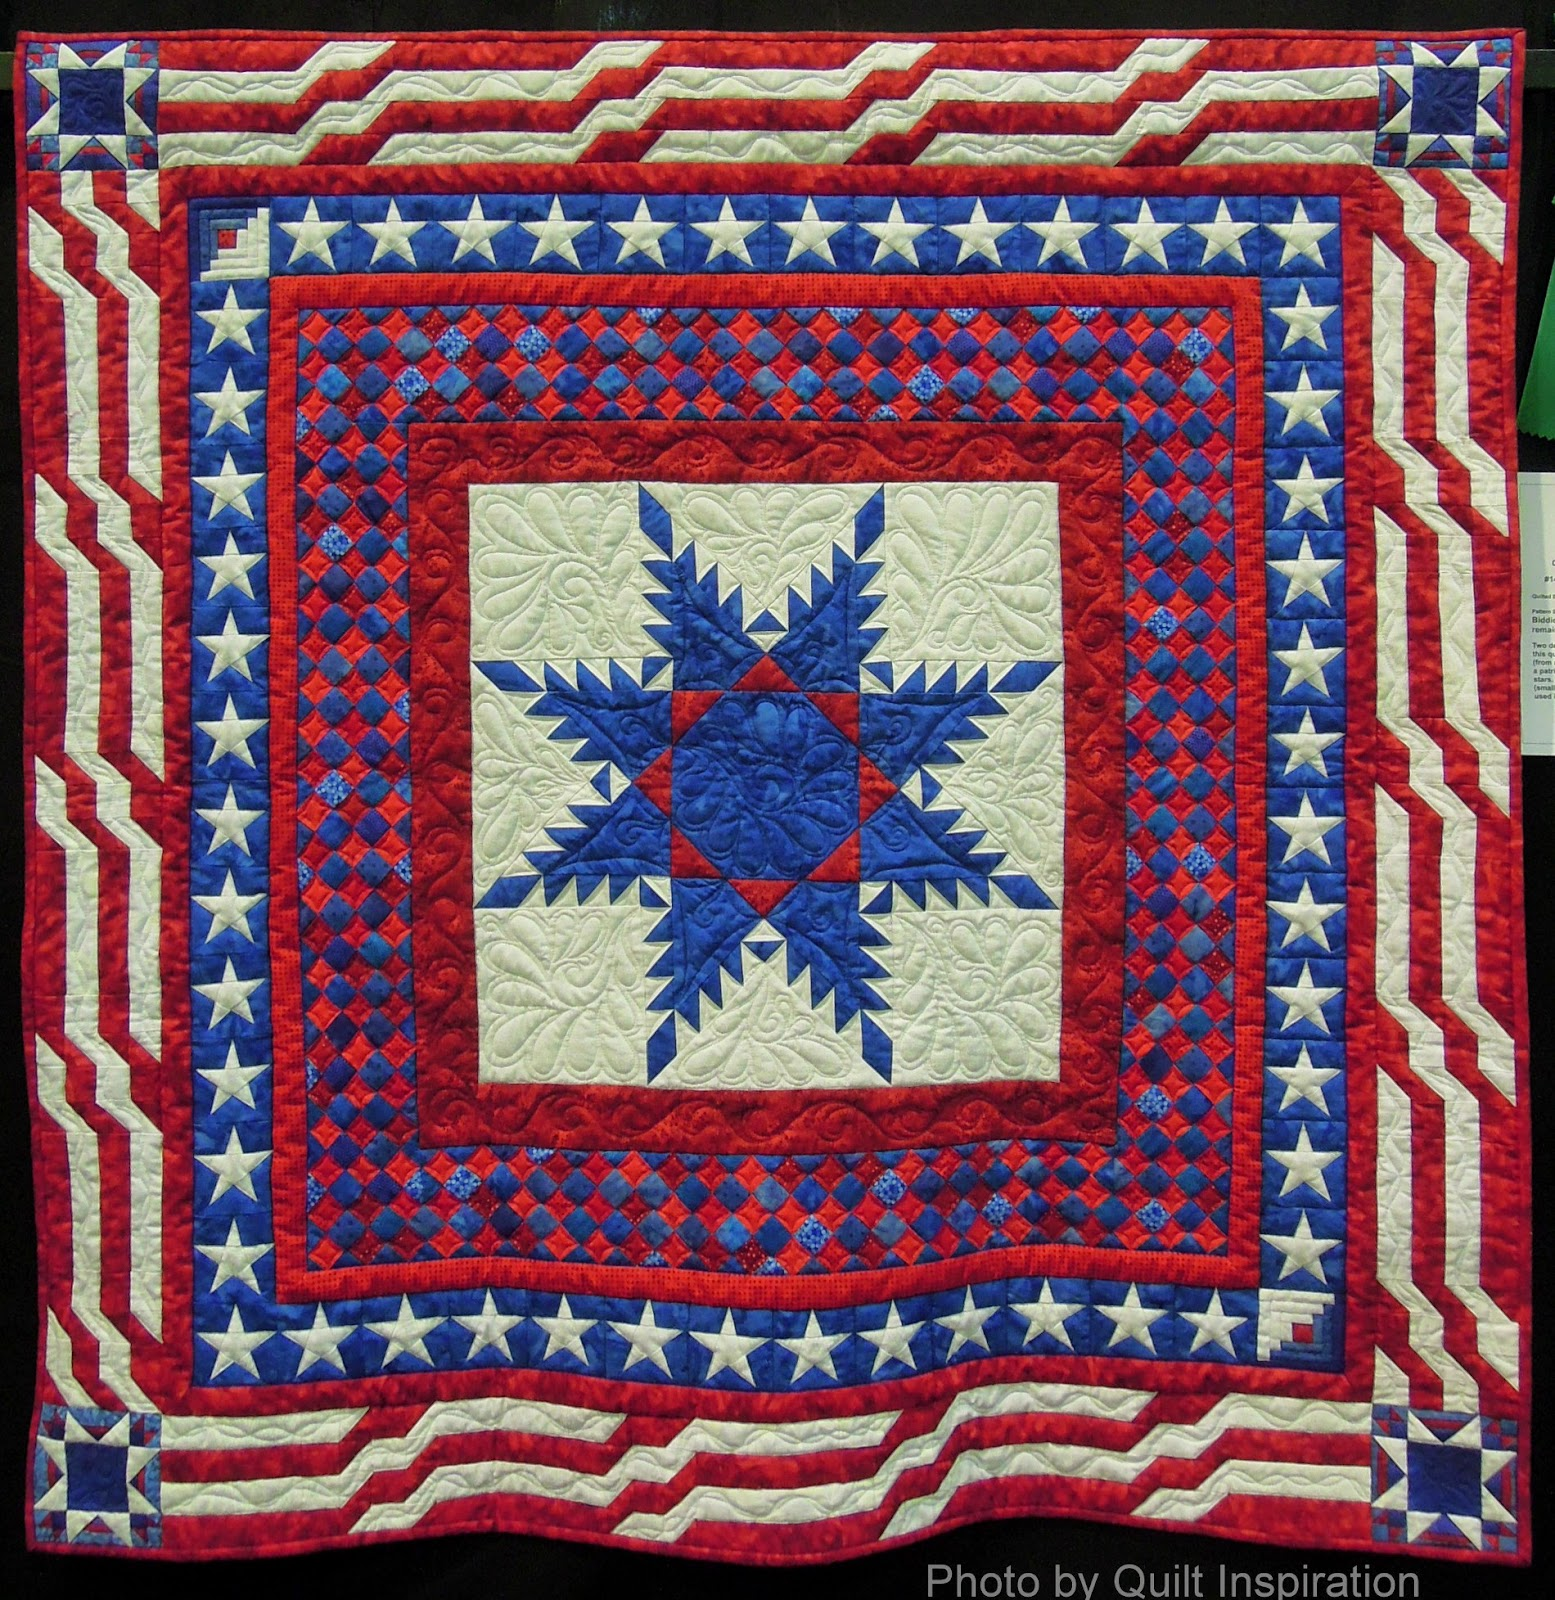 Quilt Inspiration: Fourth of July 2014 : fourth of july quilt pattern - Adamdwight.com